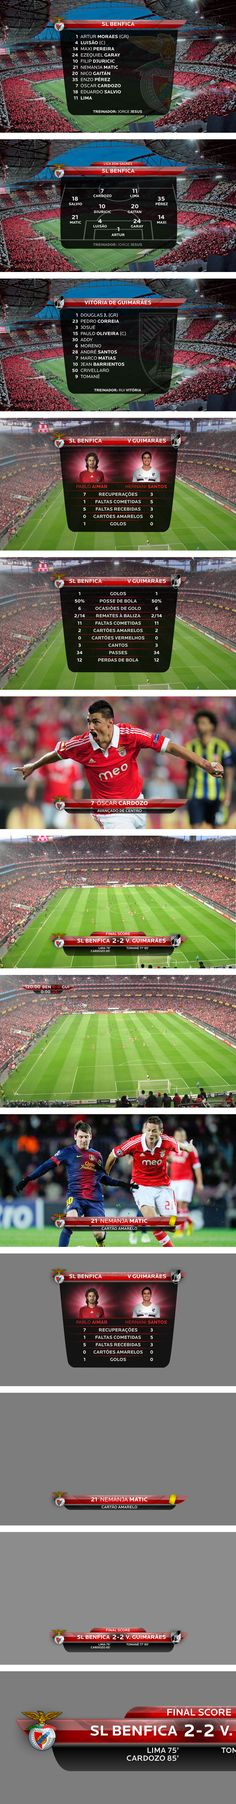 Benfica TV - On-air design - Paulo Garcia Gaming Banner, Football Design, Sports Graphics, Soccer Training, Game Ui, Sports Games, Design Process, Motion Graphics, Infographic